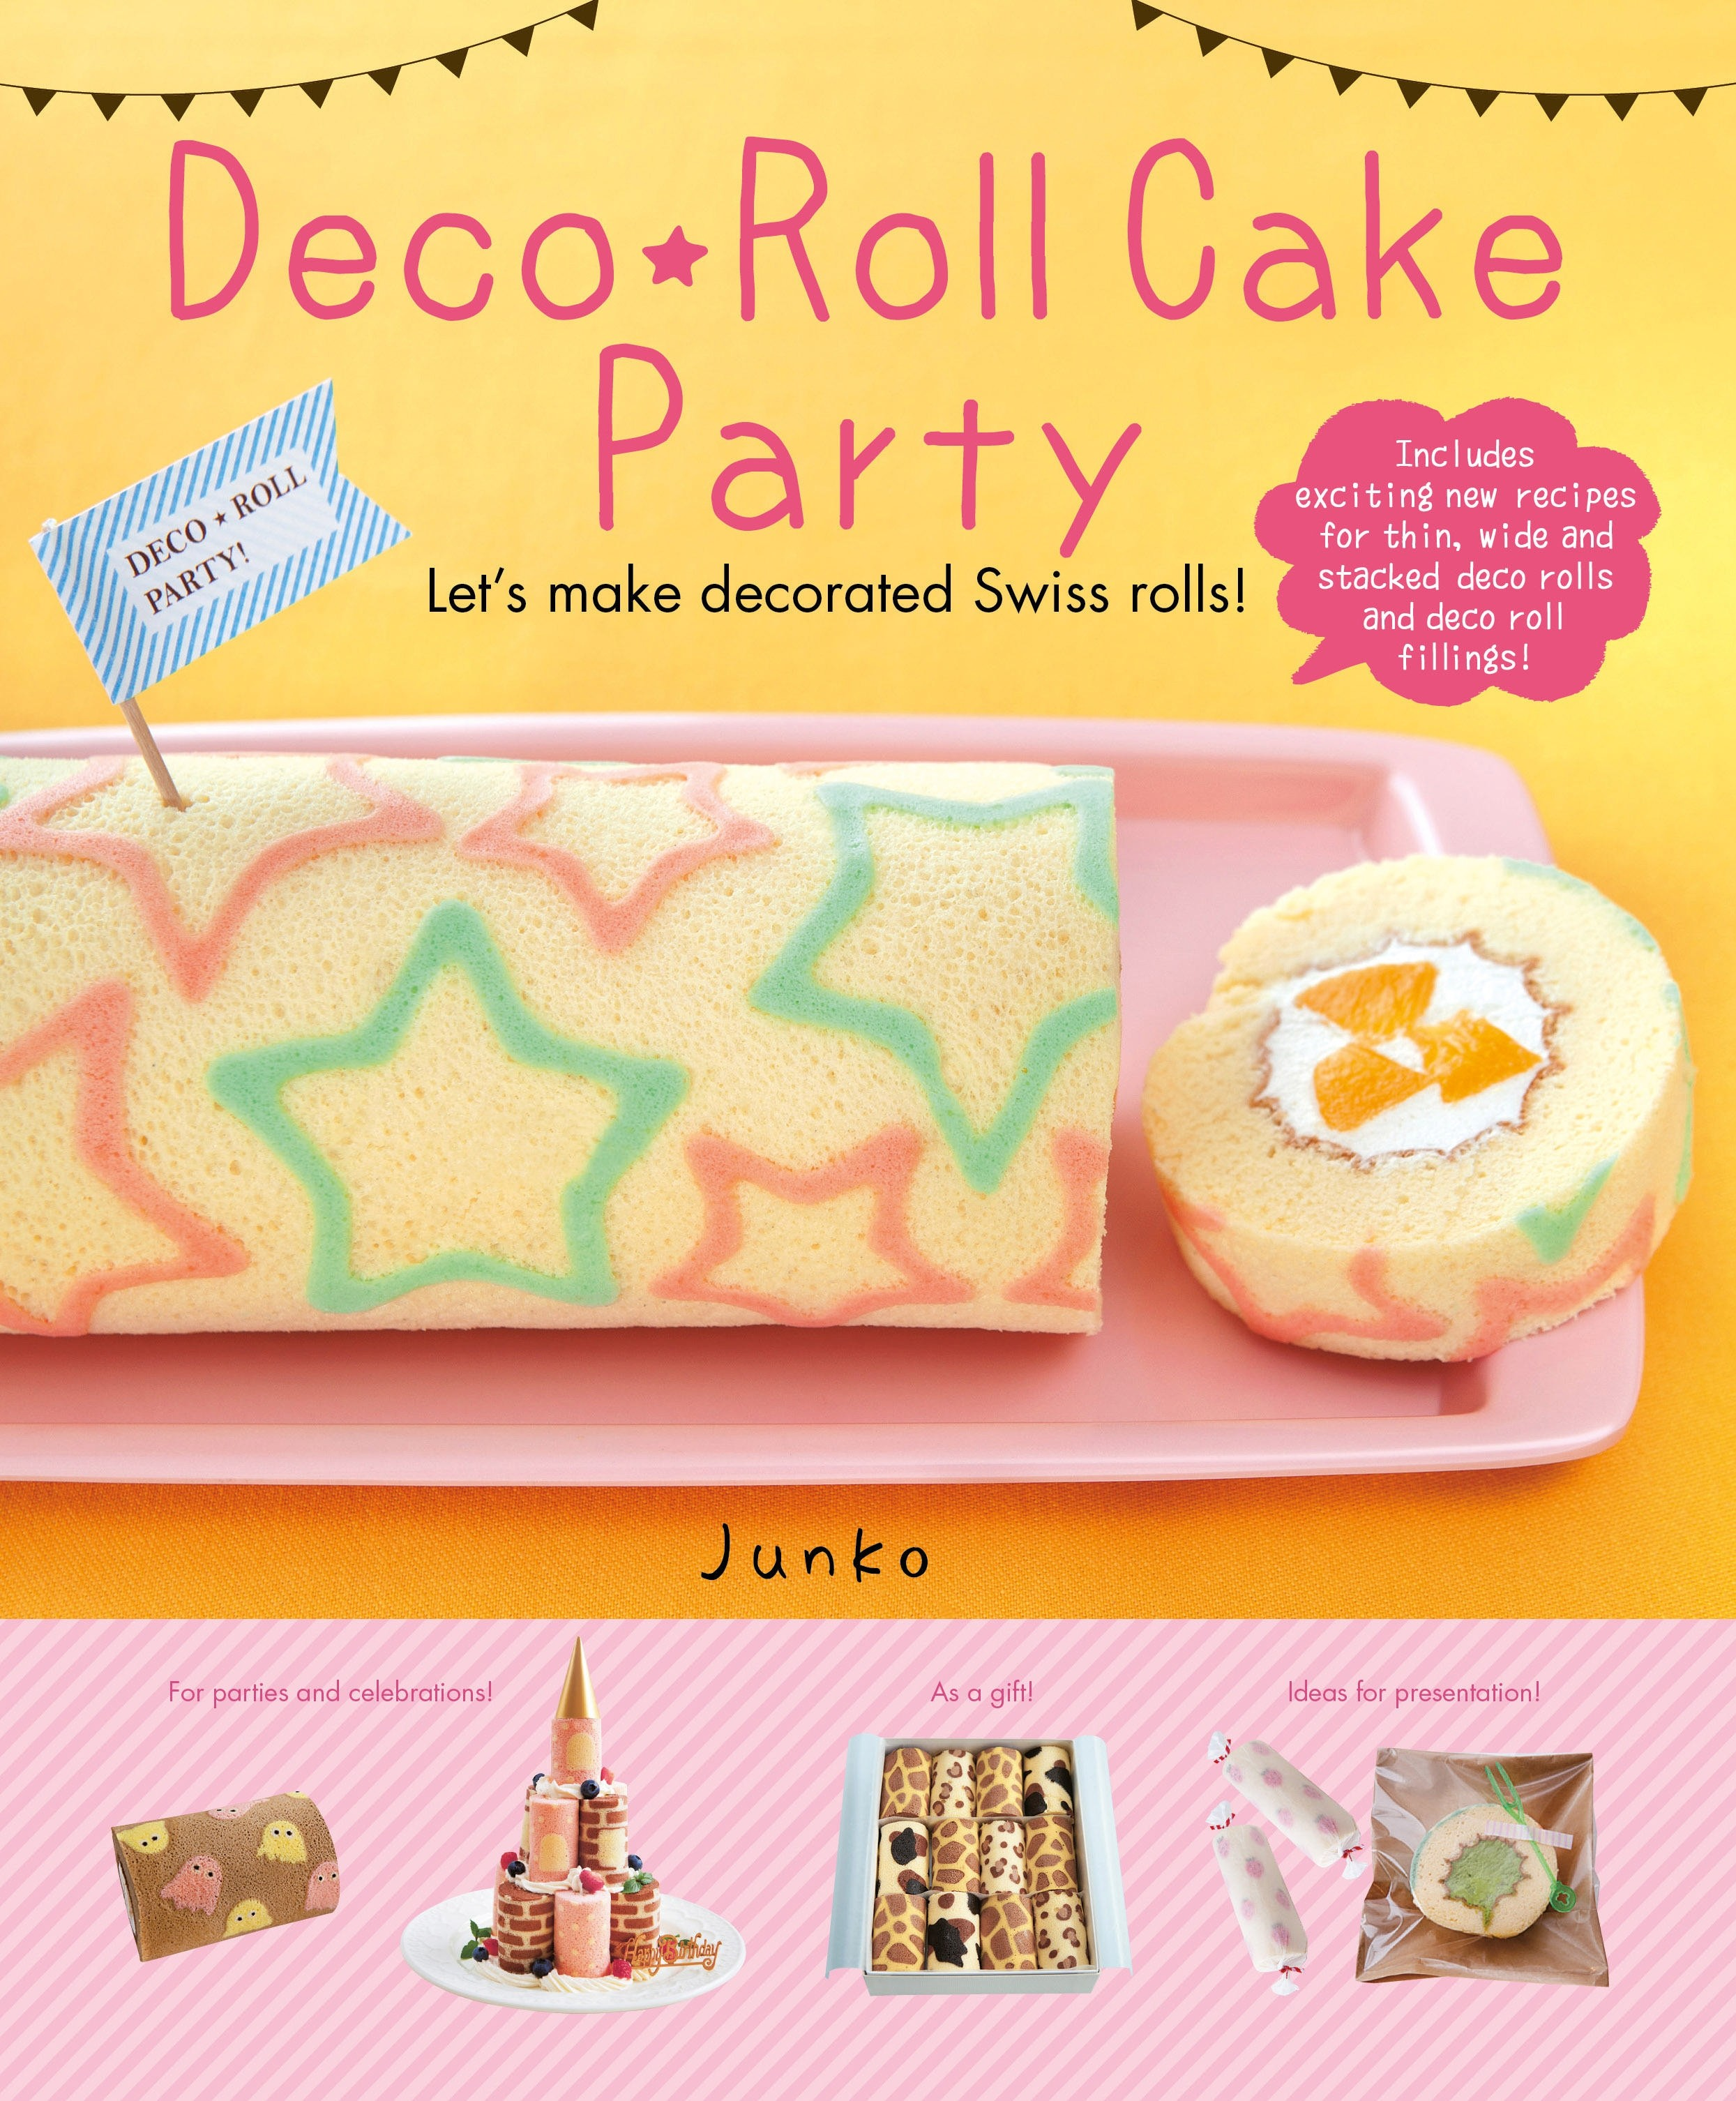 Deco Roll Cake Party